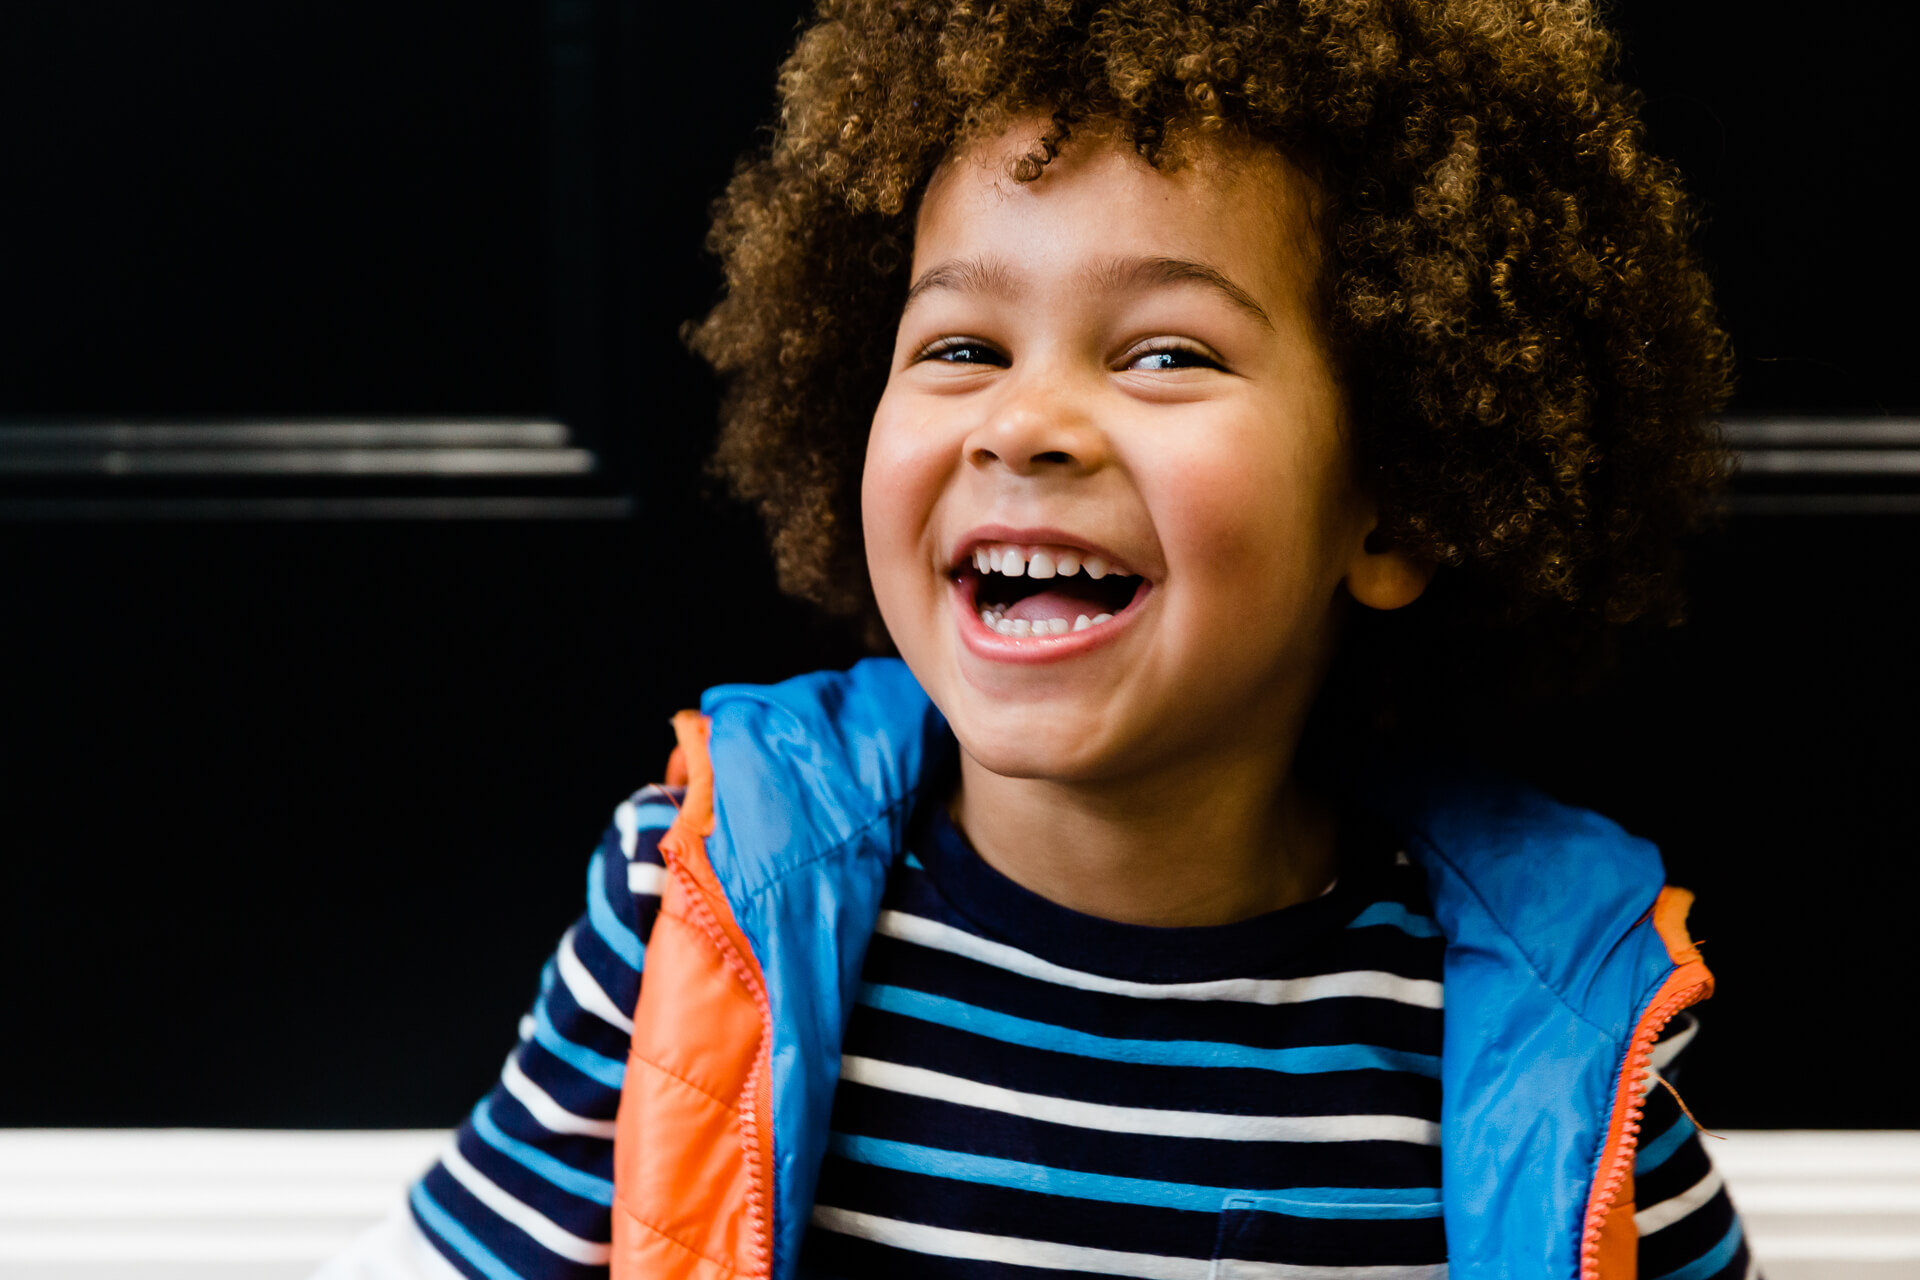 Gorgeous smiling boy with afro in Child modelling headshots by Chelmsford photographer Kika Mitchell Photography Essex